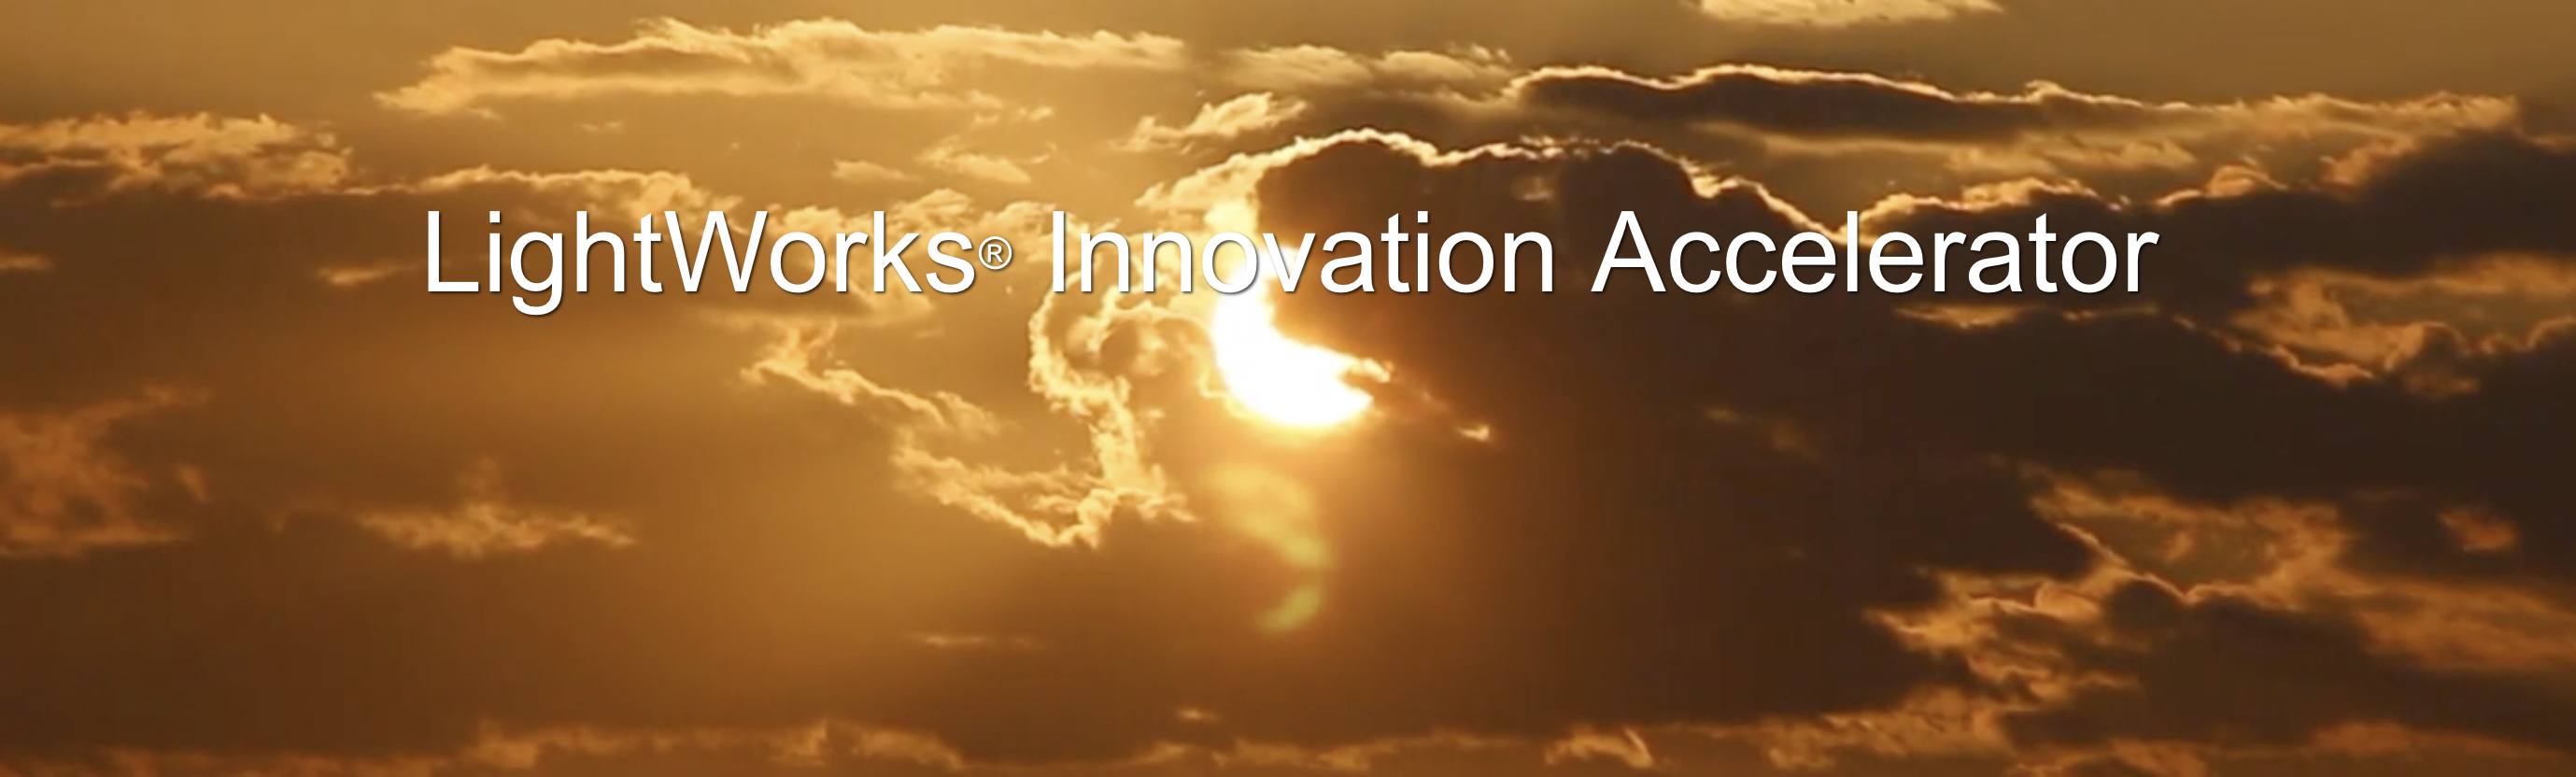 LightWorks® Innovation Accelerator